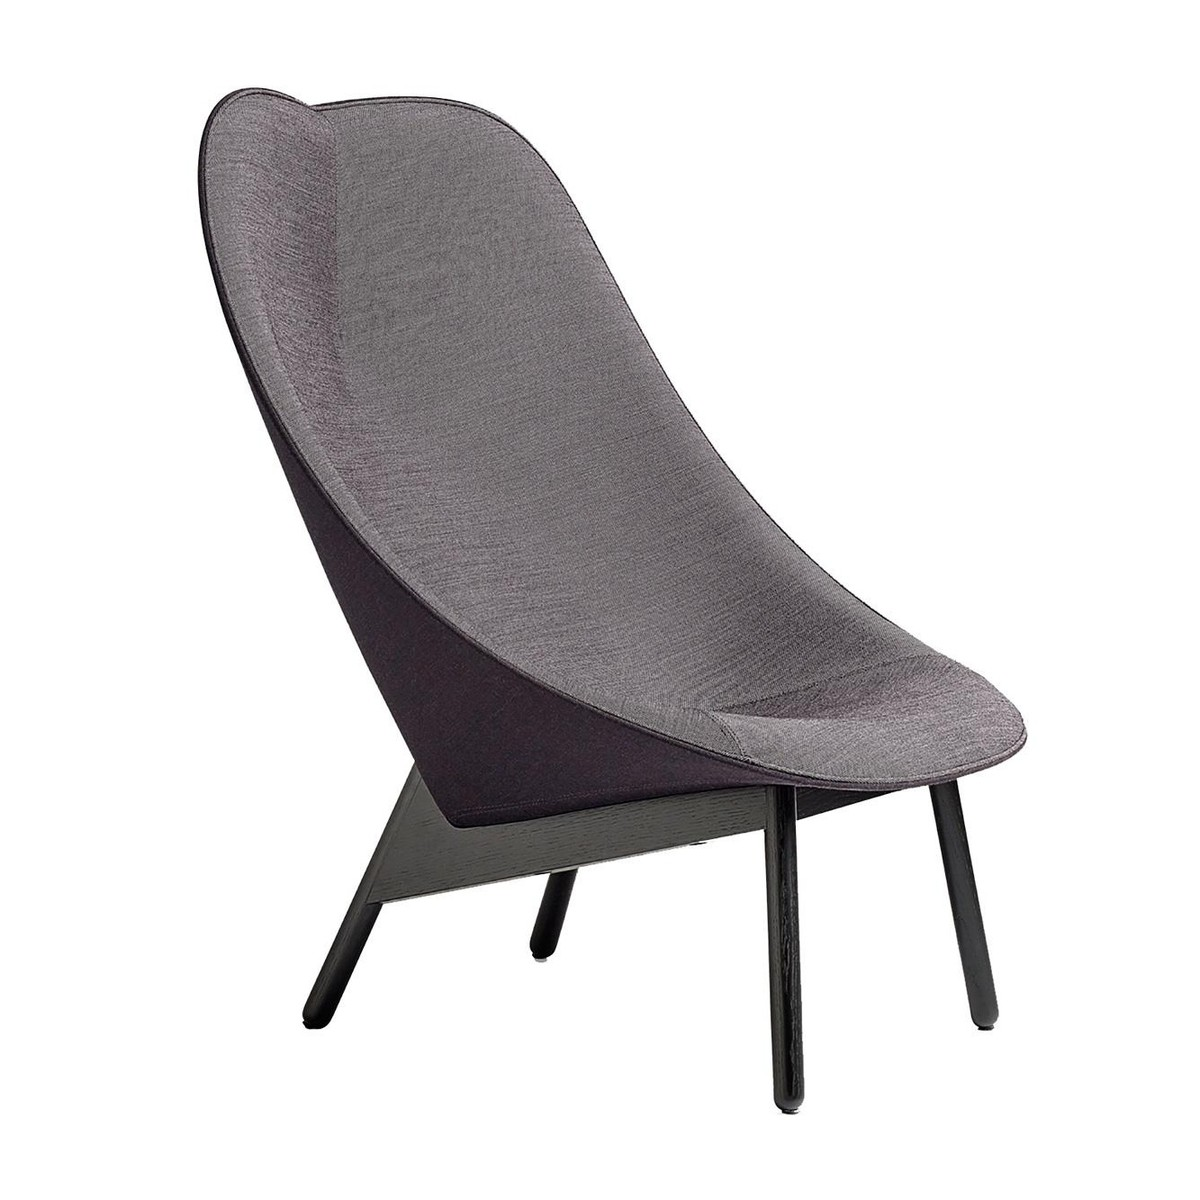 uchiwa lounge chair frame black | hay | ambientedirect, Hause deko